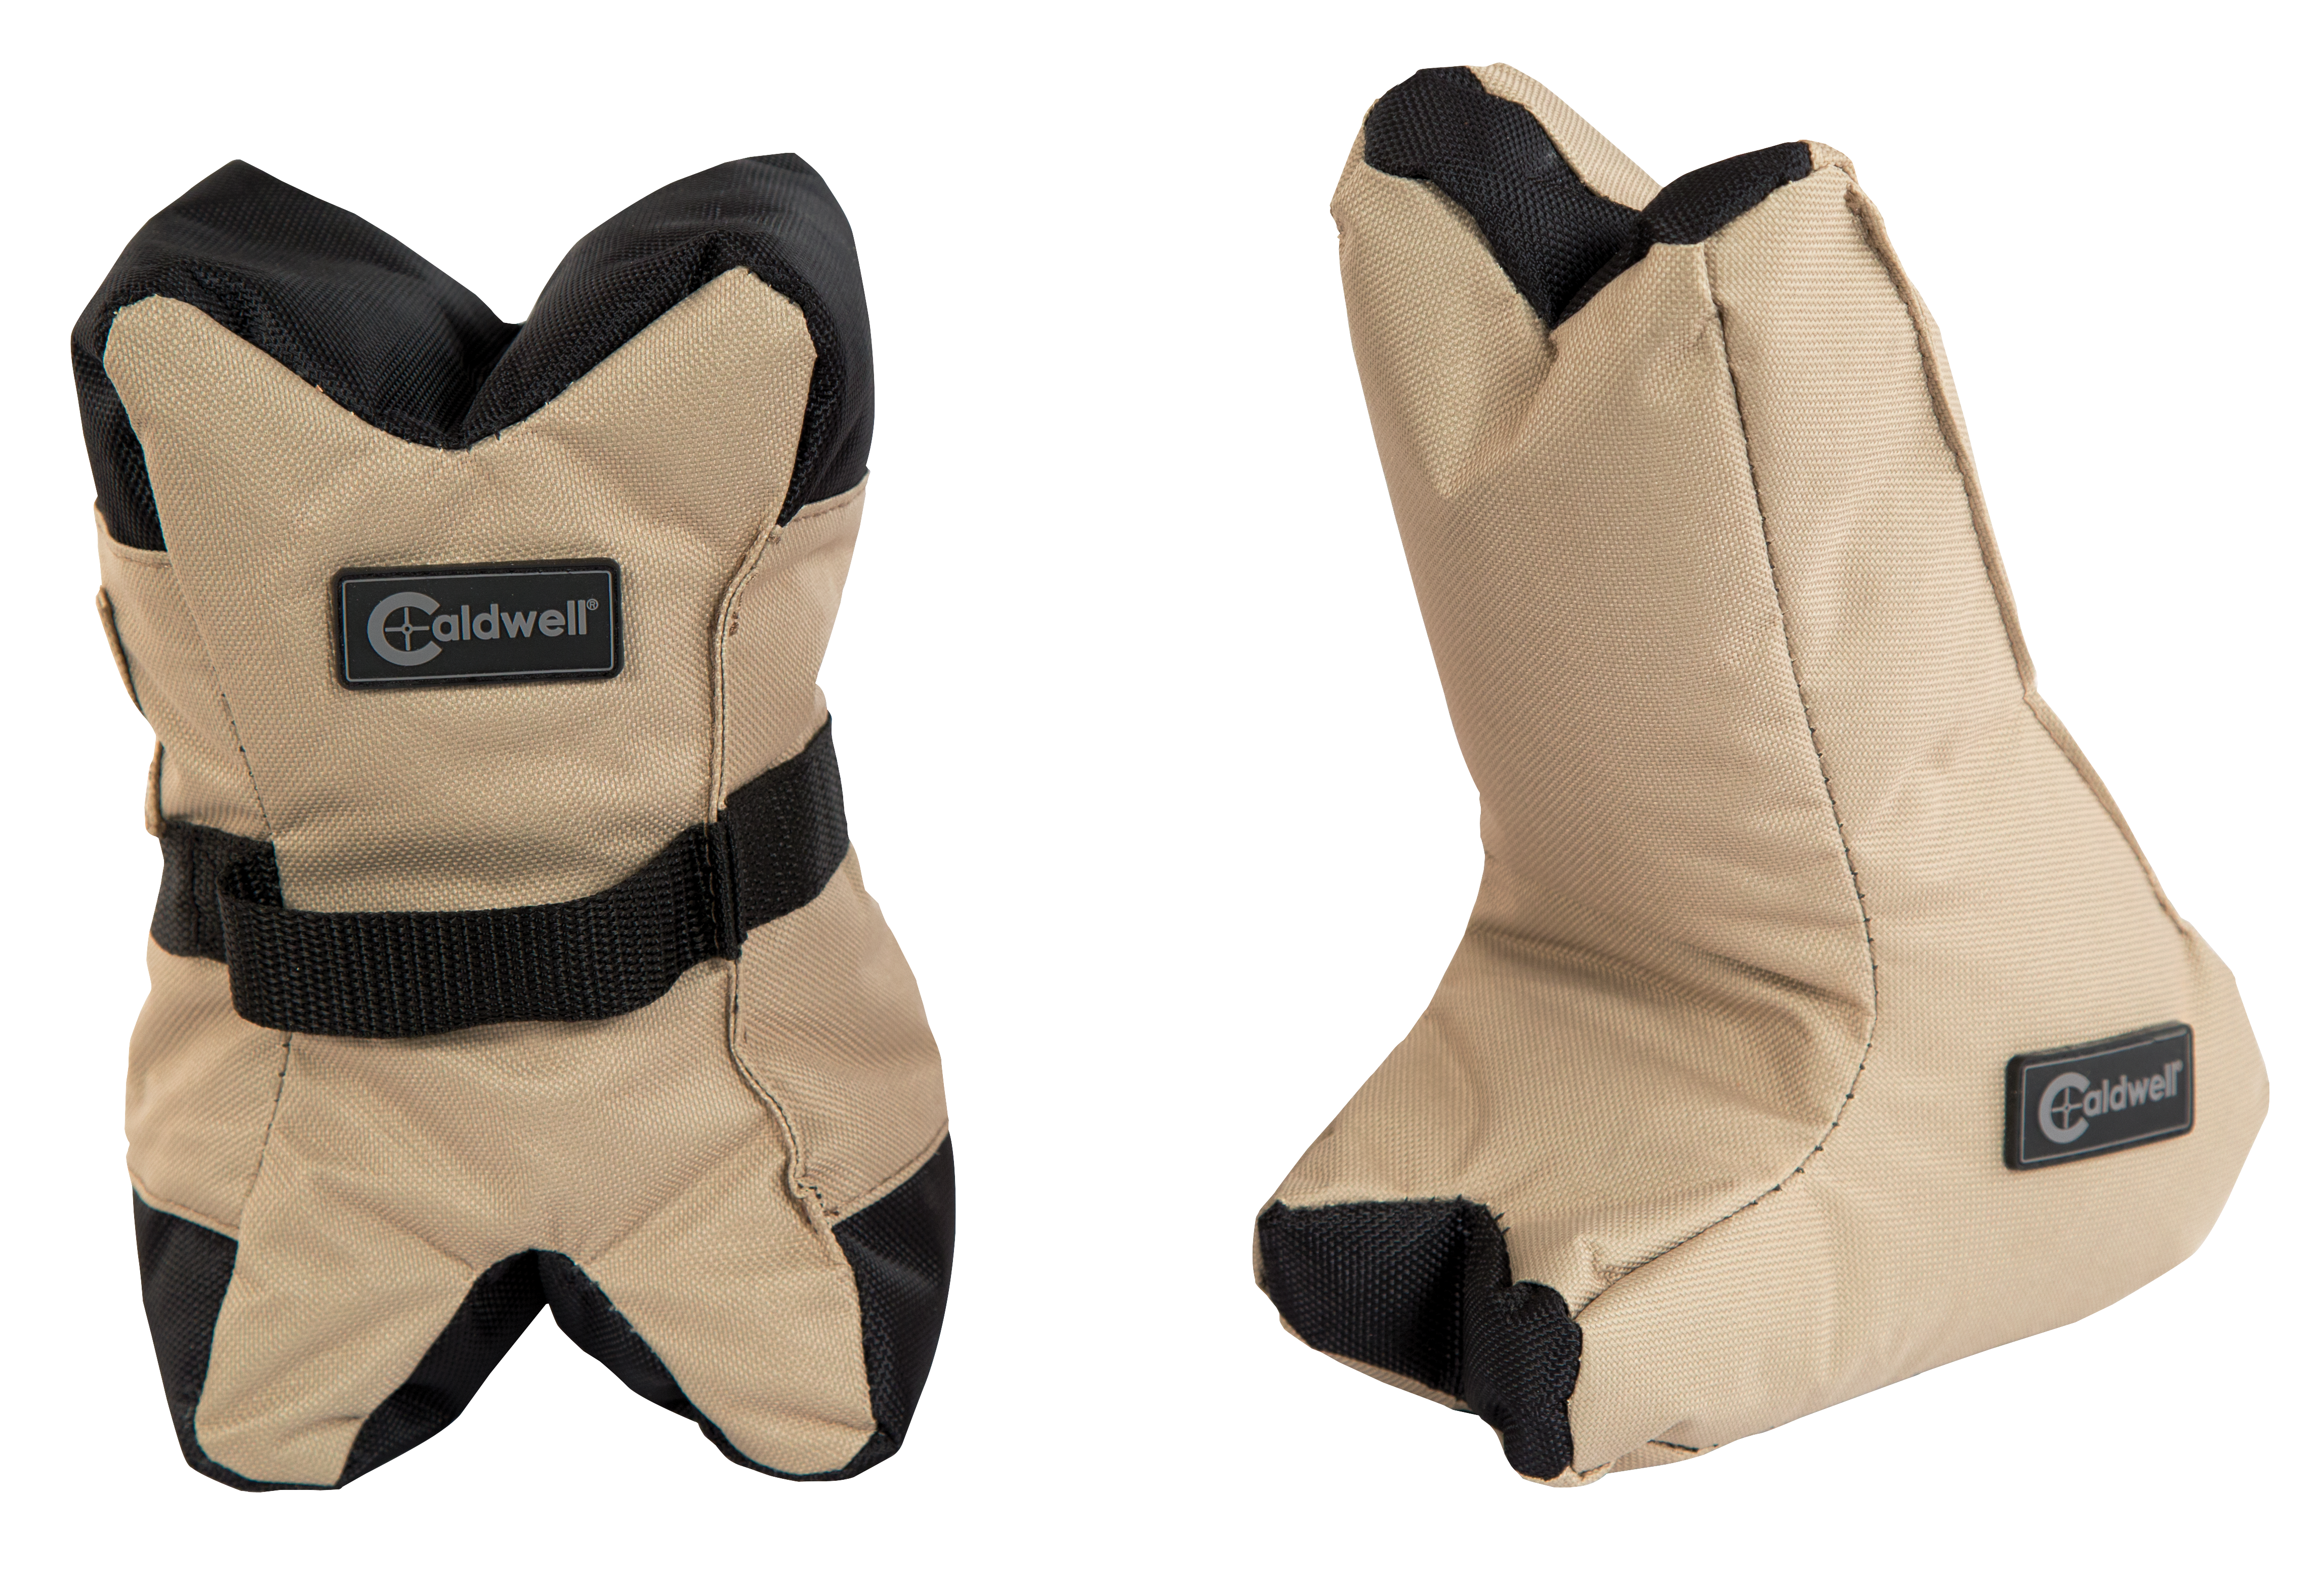 Caldwell AR DeadShot Shooting Bag Front and Rear Bag - Filled